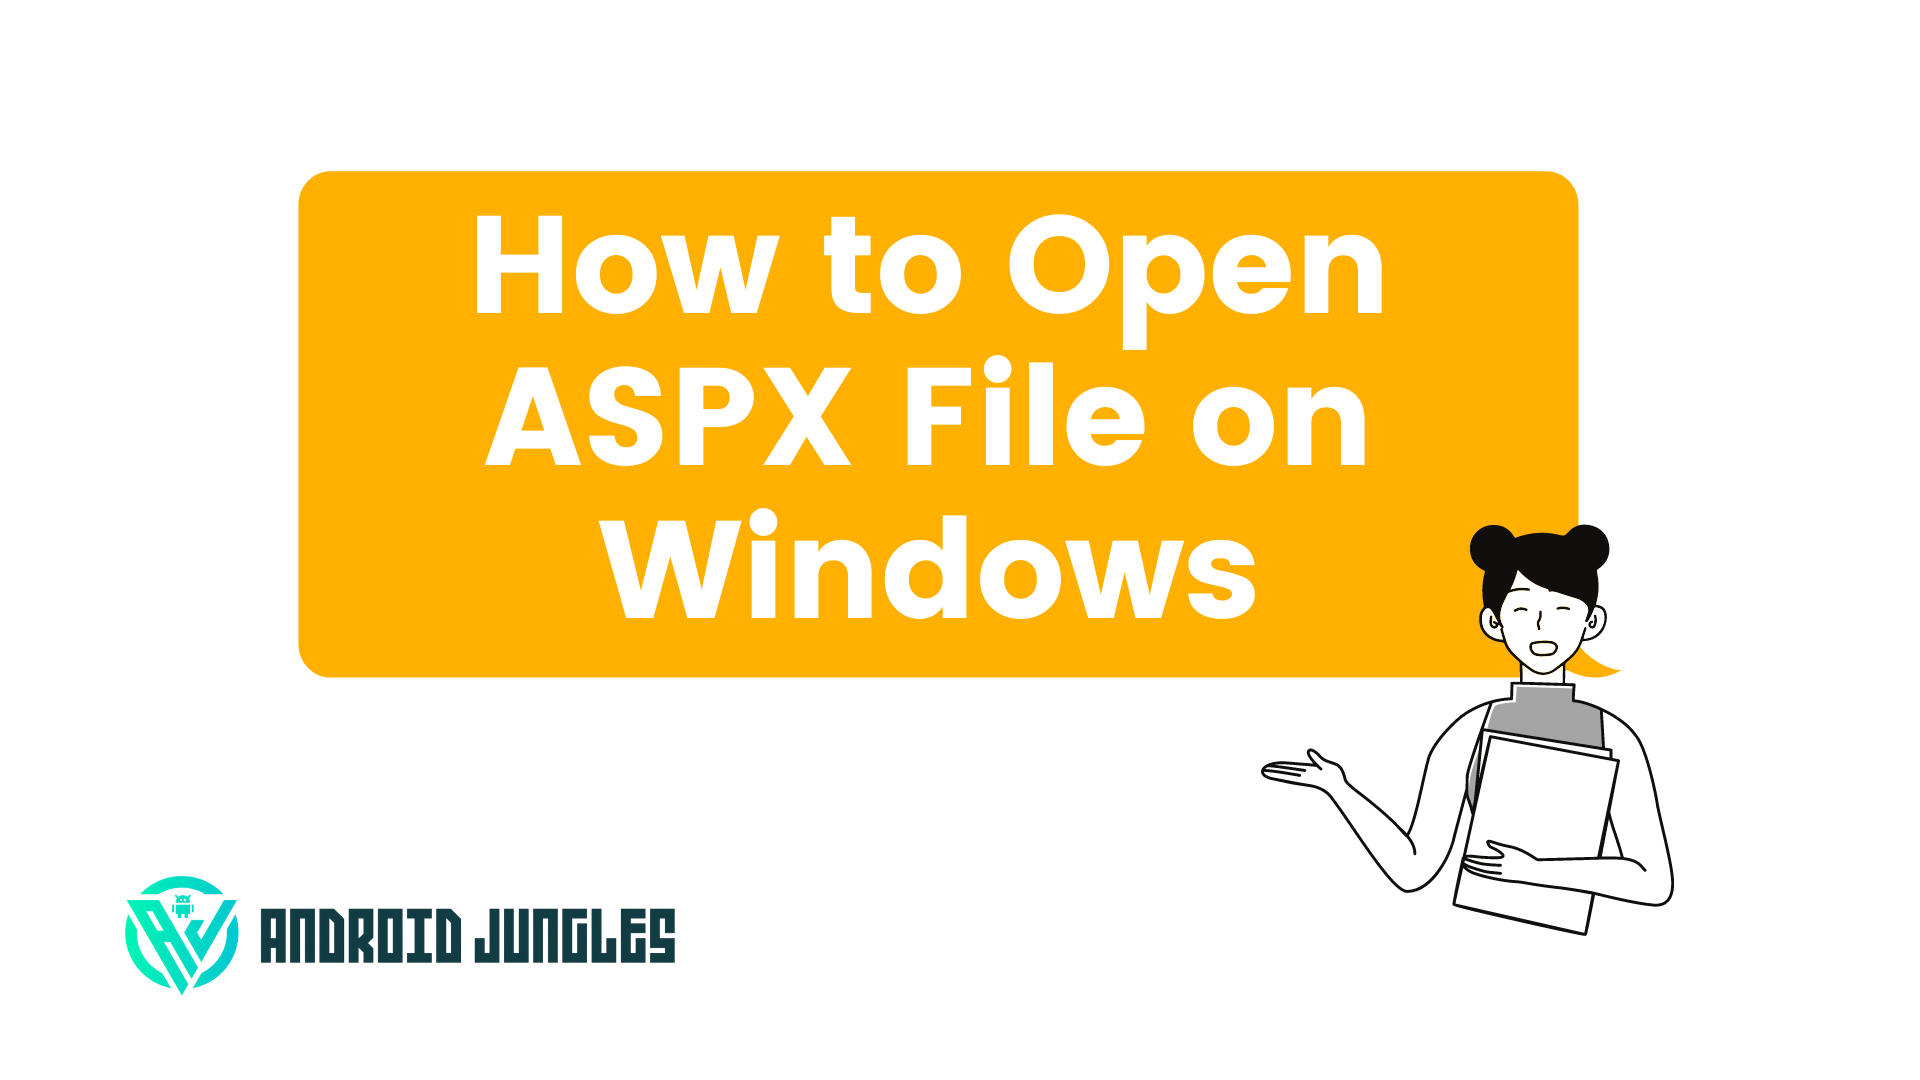 How to Open ASPX File on Windows